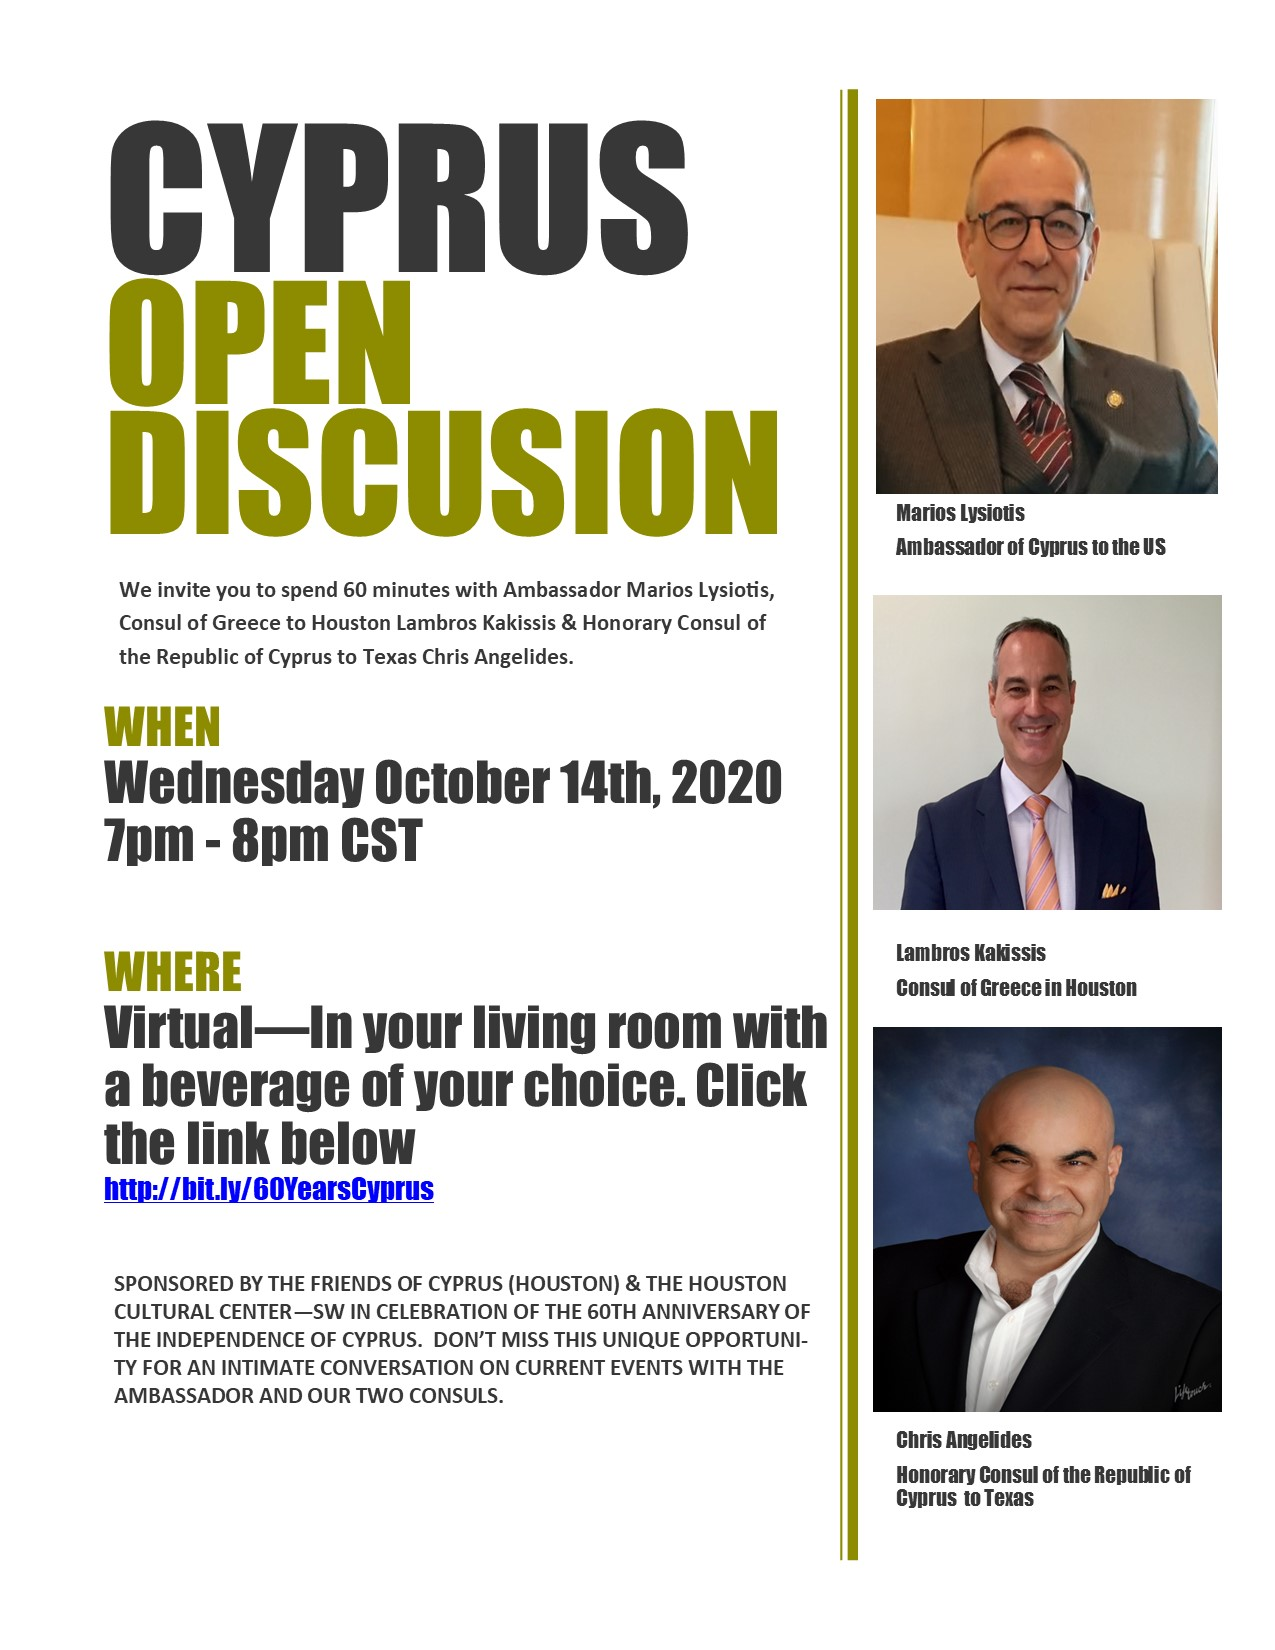 Sponsored by the Friends of Cyprus (Houston) & the Cultural Center of the Southwest in celebration of the 60th anniversary of the independence of Cyprus. Don't miss this unique opportunity for an intimate conversation on current events with the ambassador and our two consuls